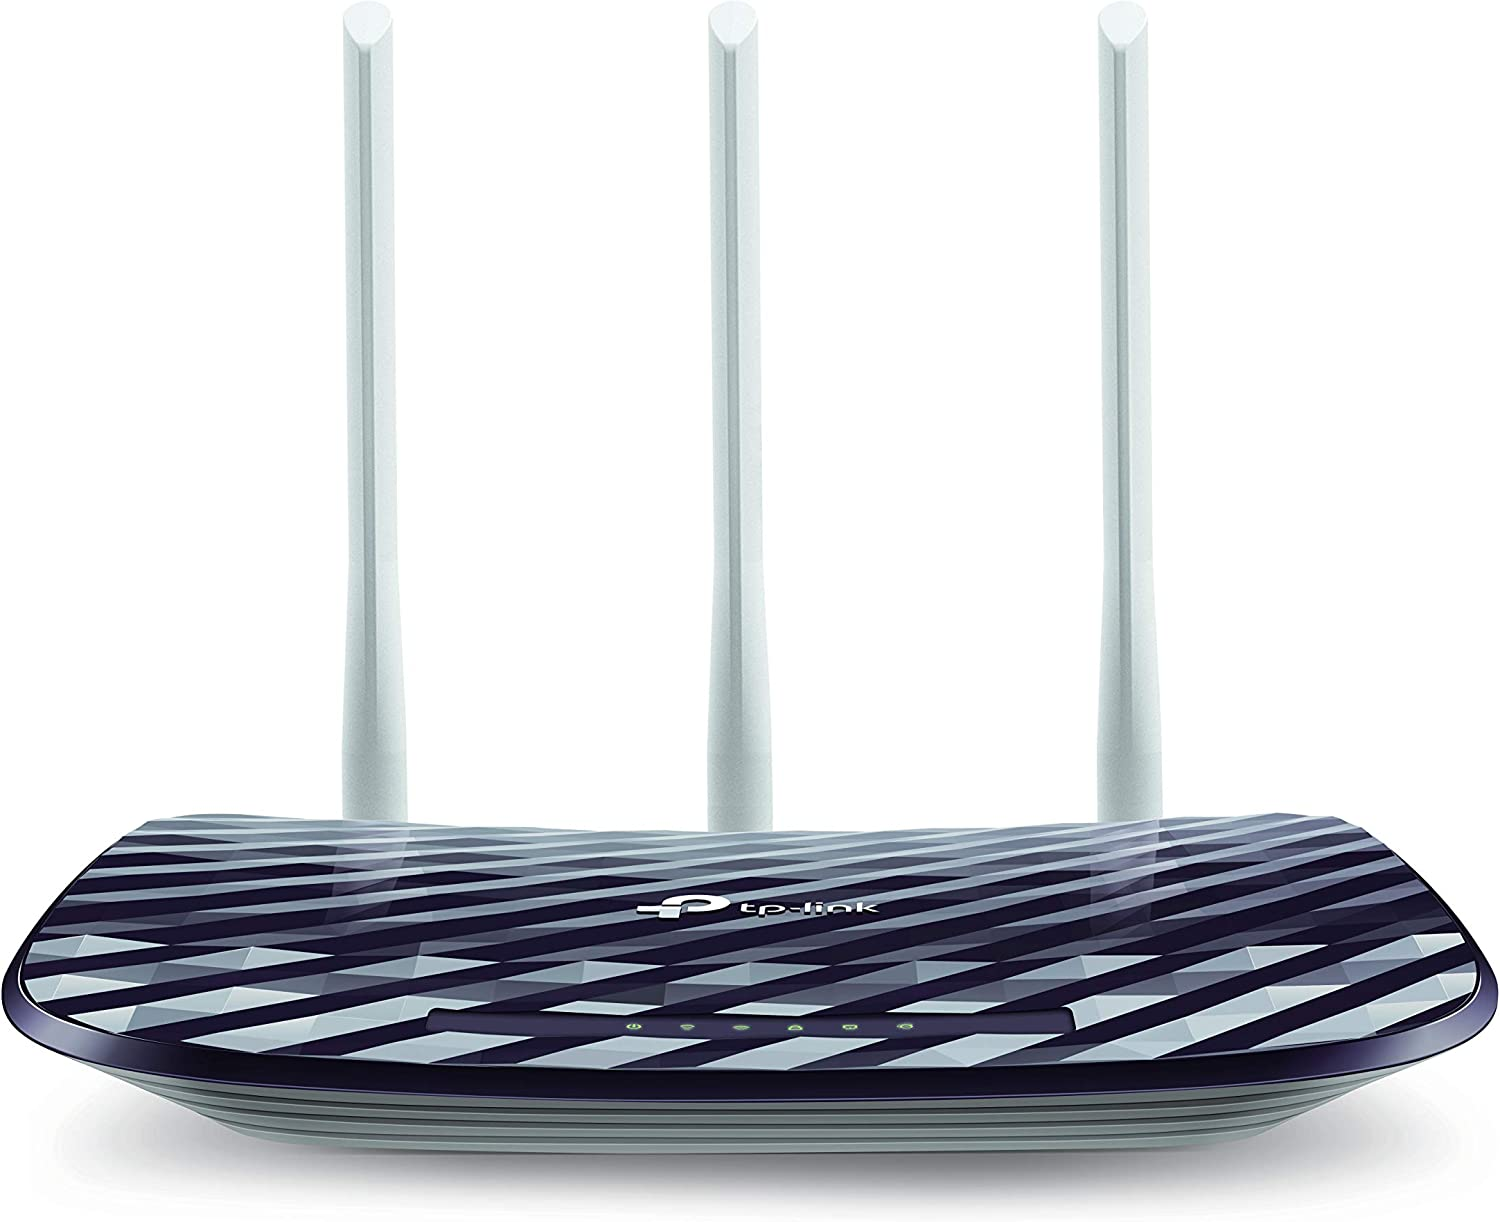 Amazon.com: TP-LINK AC750 IEEE 802.11ac Ethernet Wireless Dual Band Router  Model Archer C20: Computers & Accessories